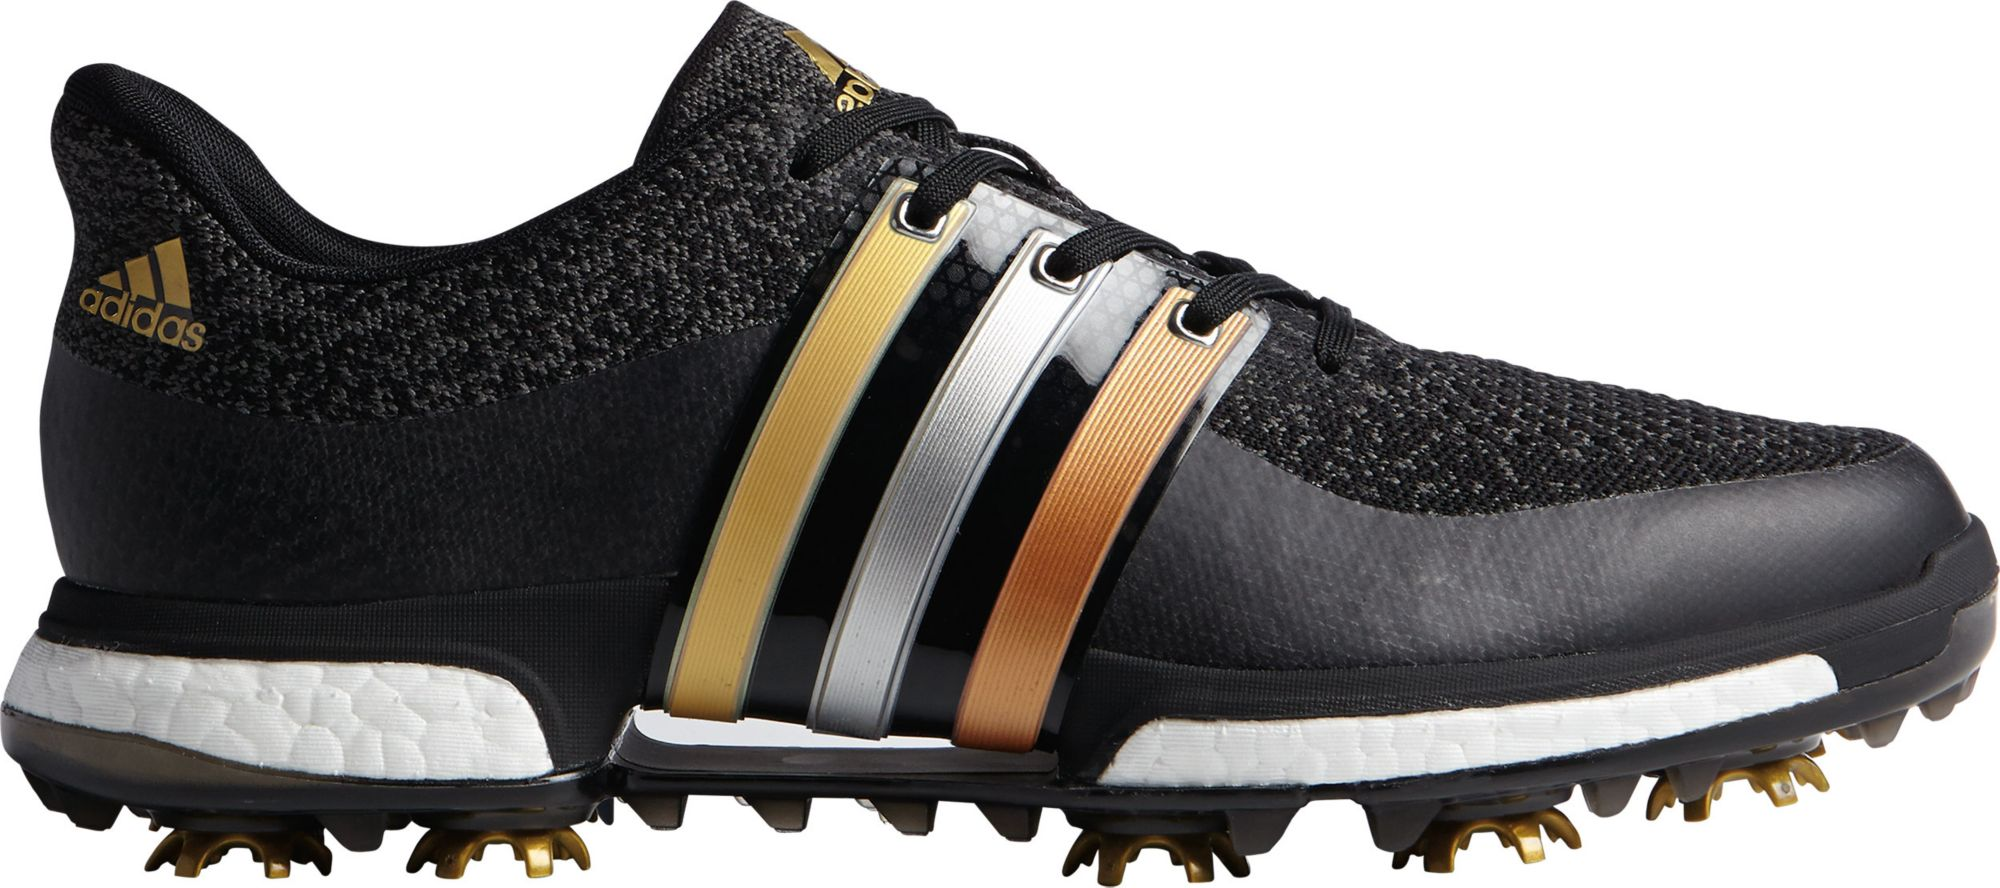 adidas boost golf shoes black